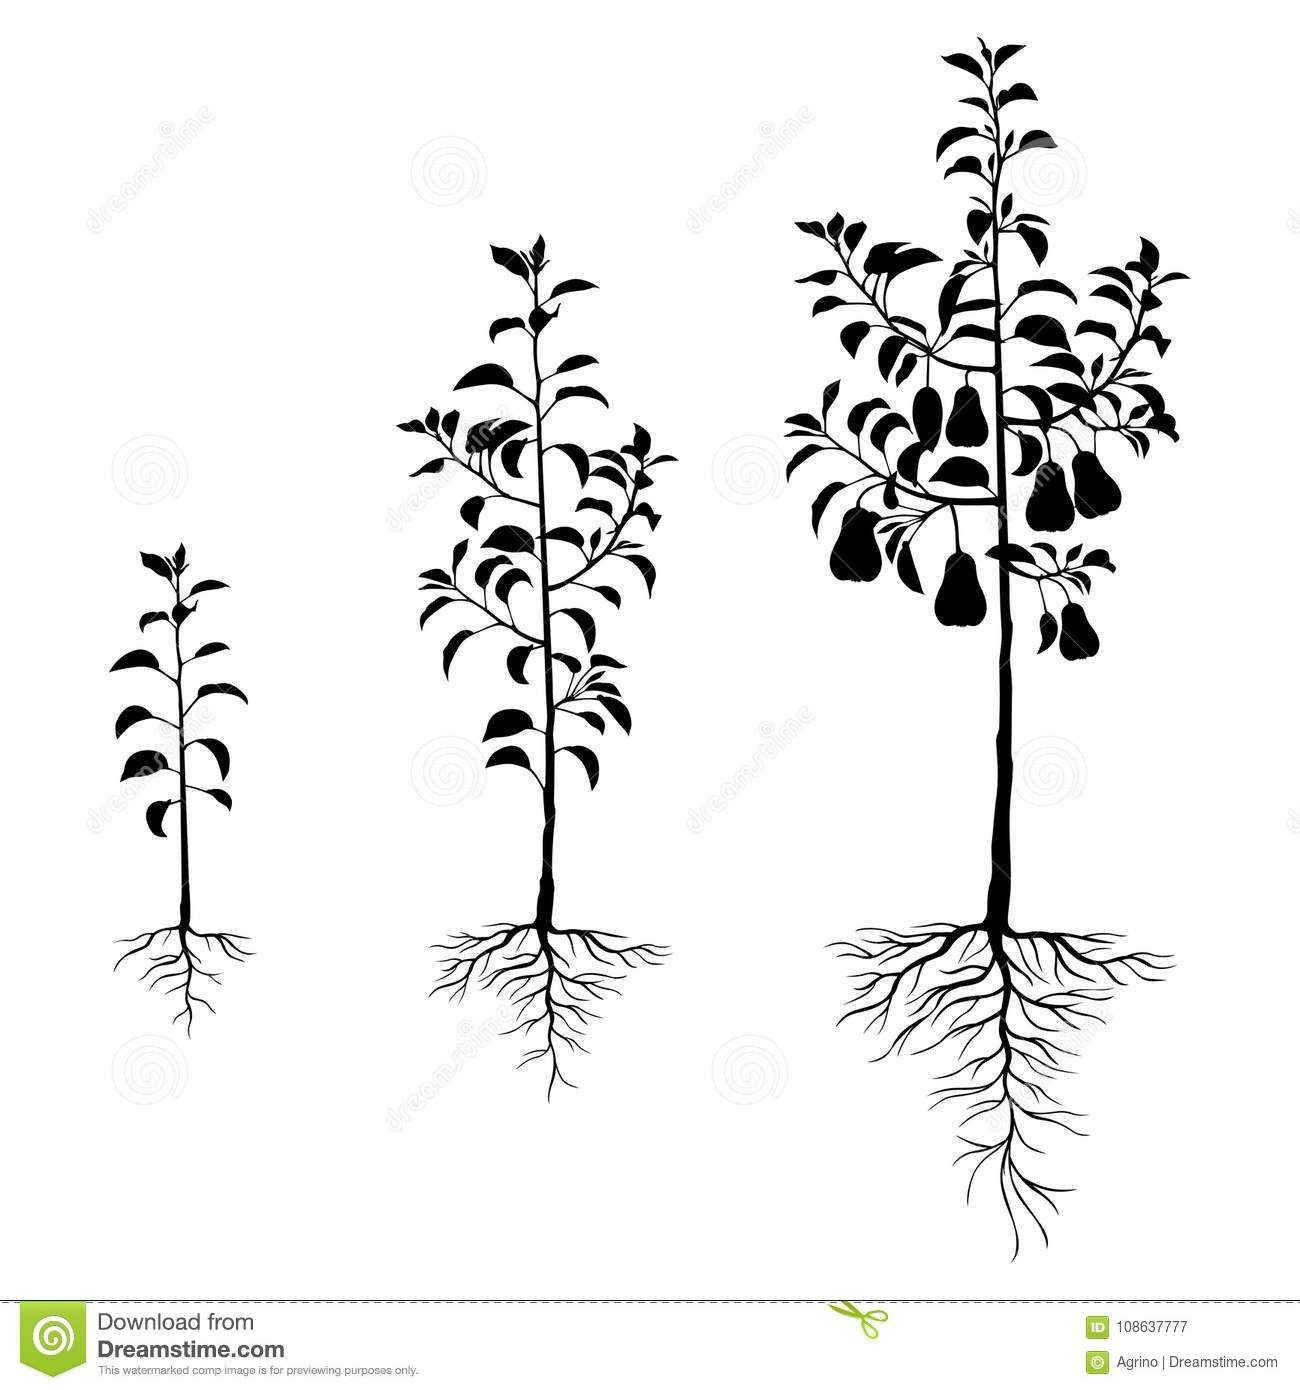 Seedling Pears Trees With Roots Set Stock Vector Illustration Of